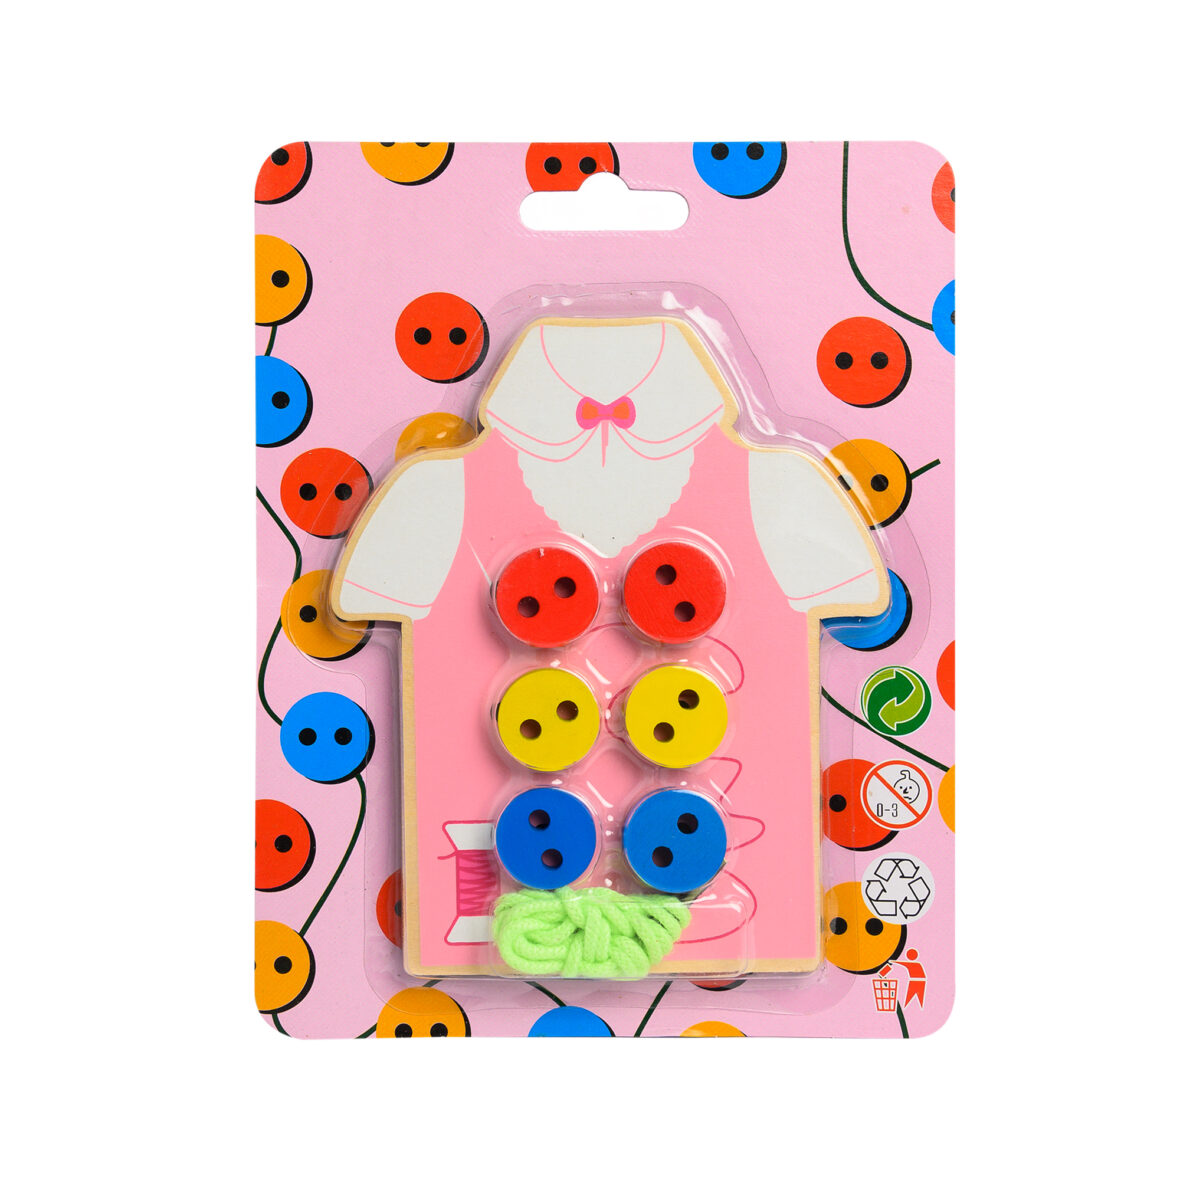 Wear The Button Wooden Toy